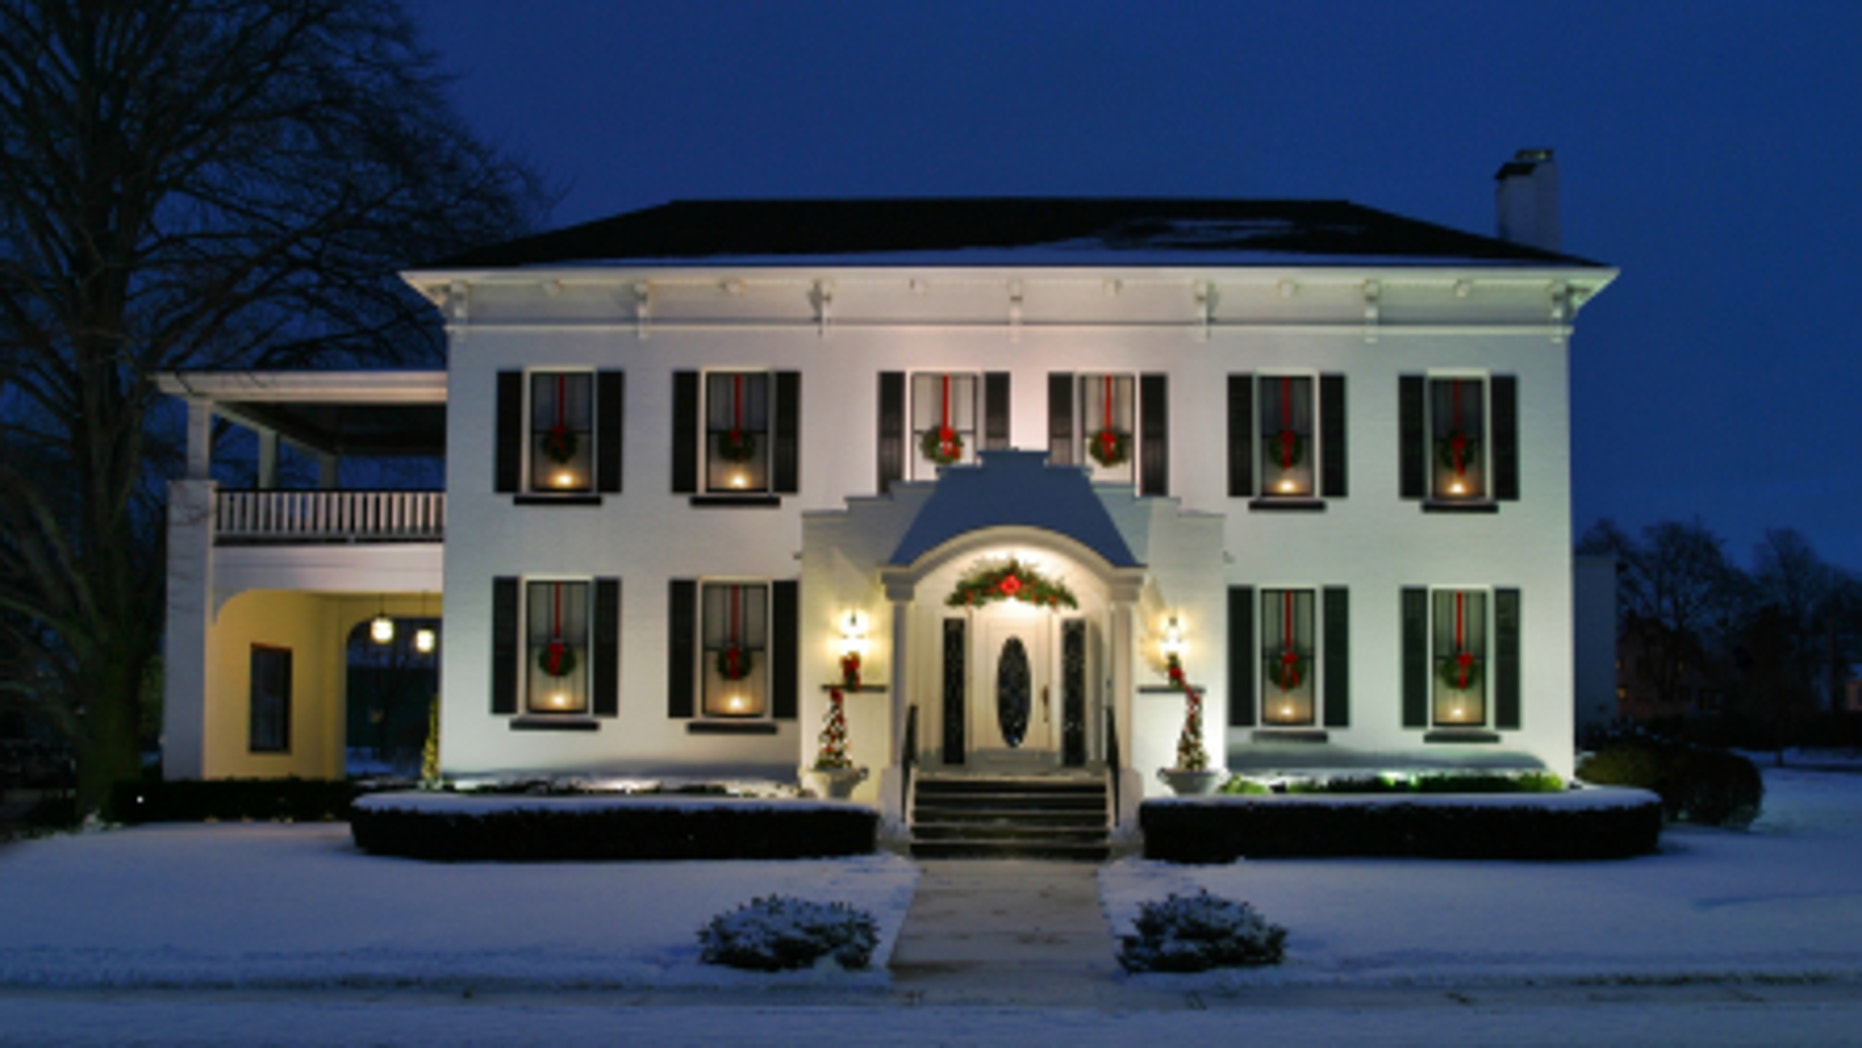 Holiday House. White house at dusk with candles wreaths in the windows.  Classicized Italianate architecture with painted brick facade.